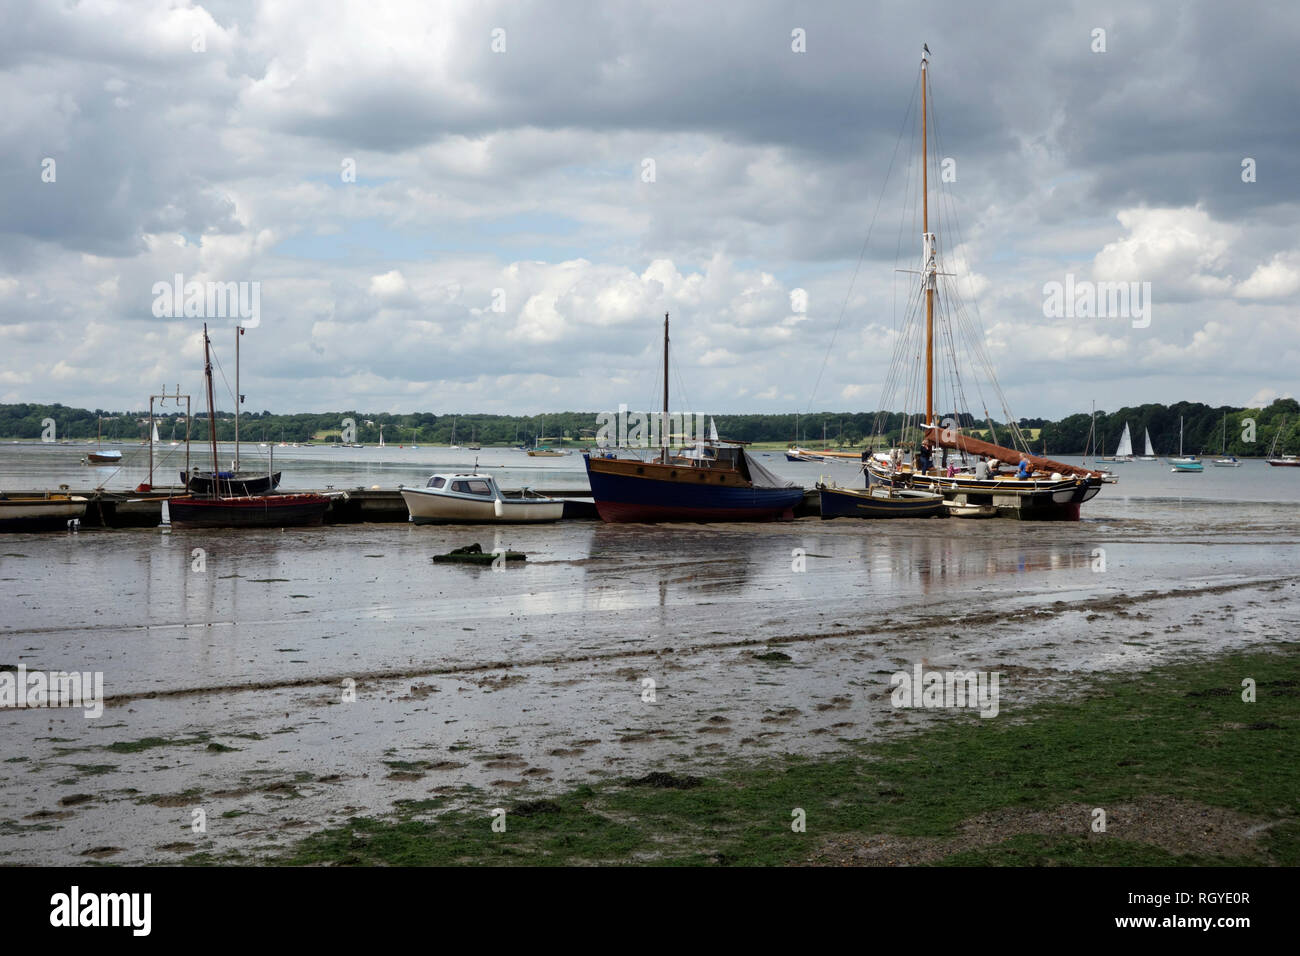 LO 195 'Gladys' with her crew on the Orwell, Pin Mill, Suffolk - Stock Image